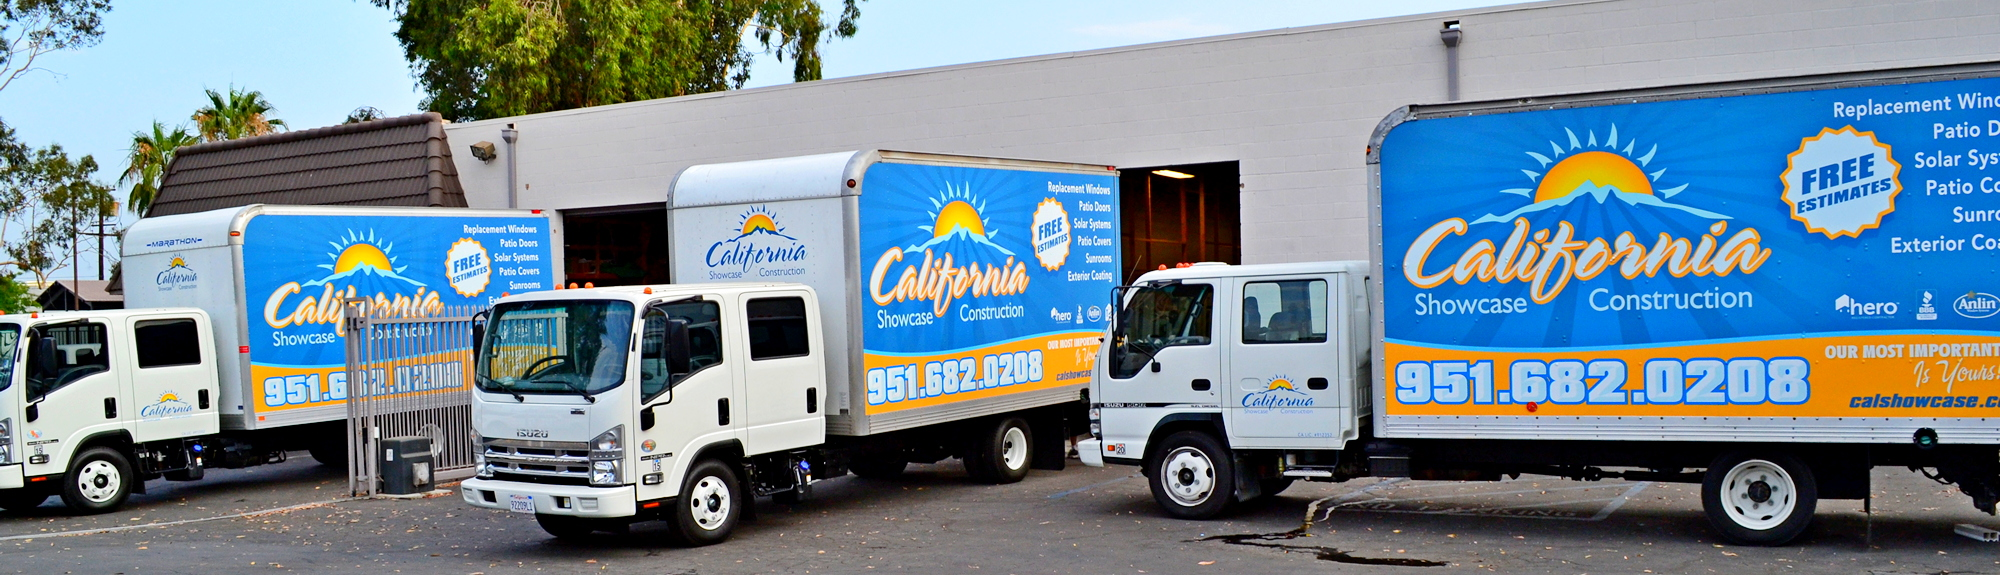 California showcase trucks